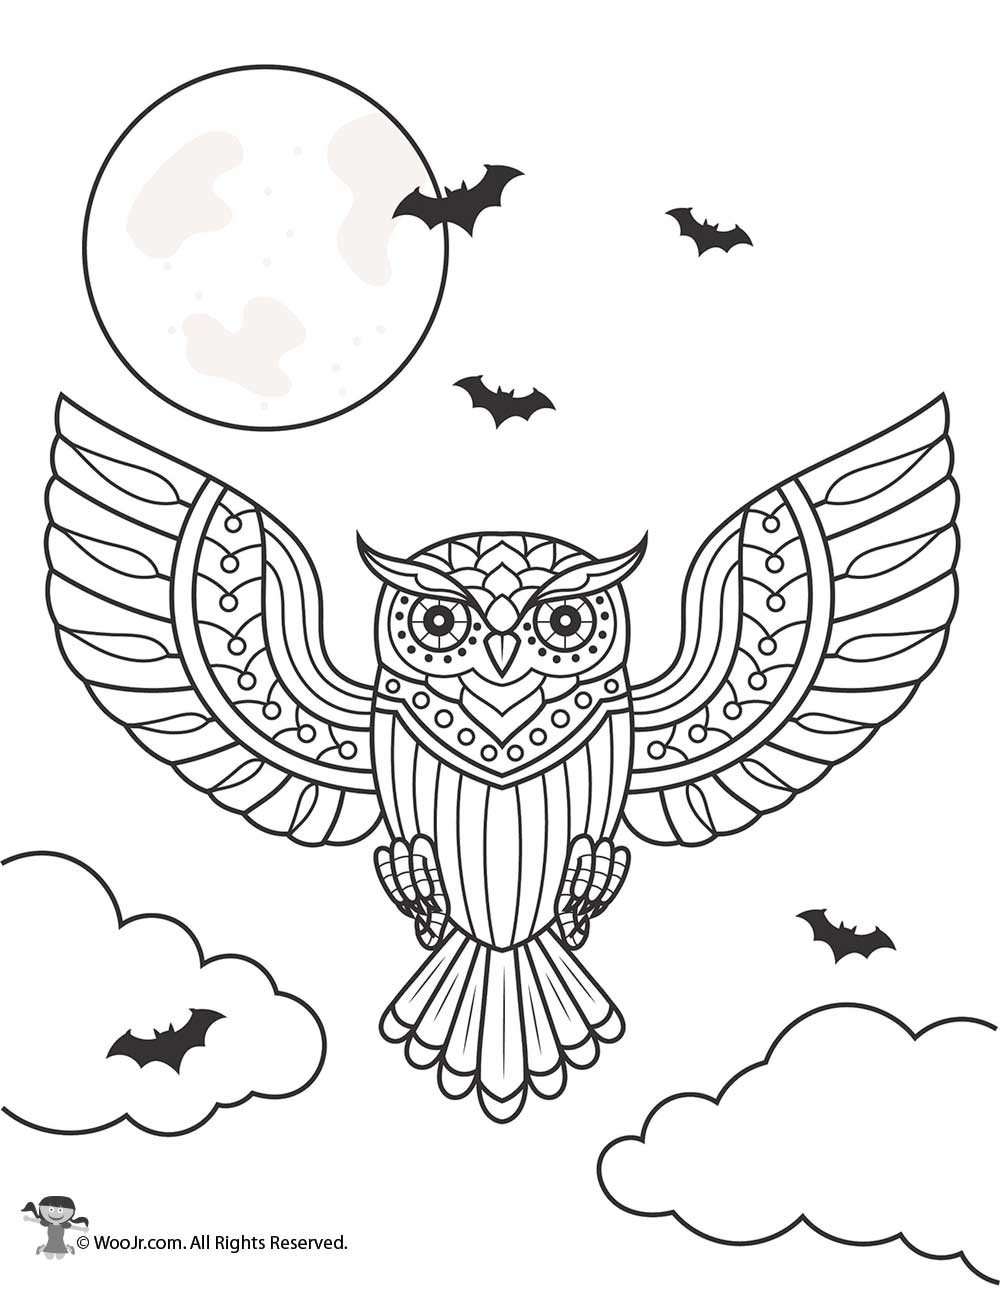 - Day Of The Dead Owl Coloring Page Woo! Jr. Kids Activities